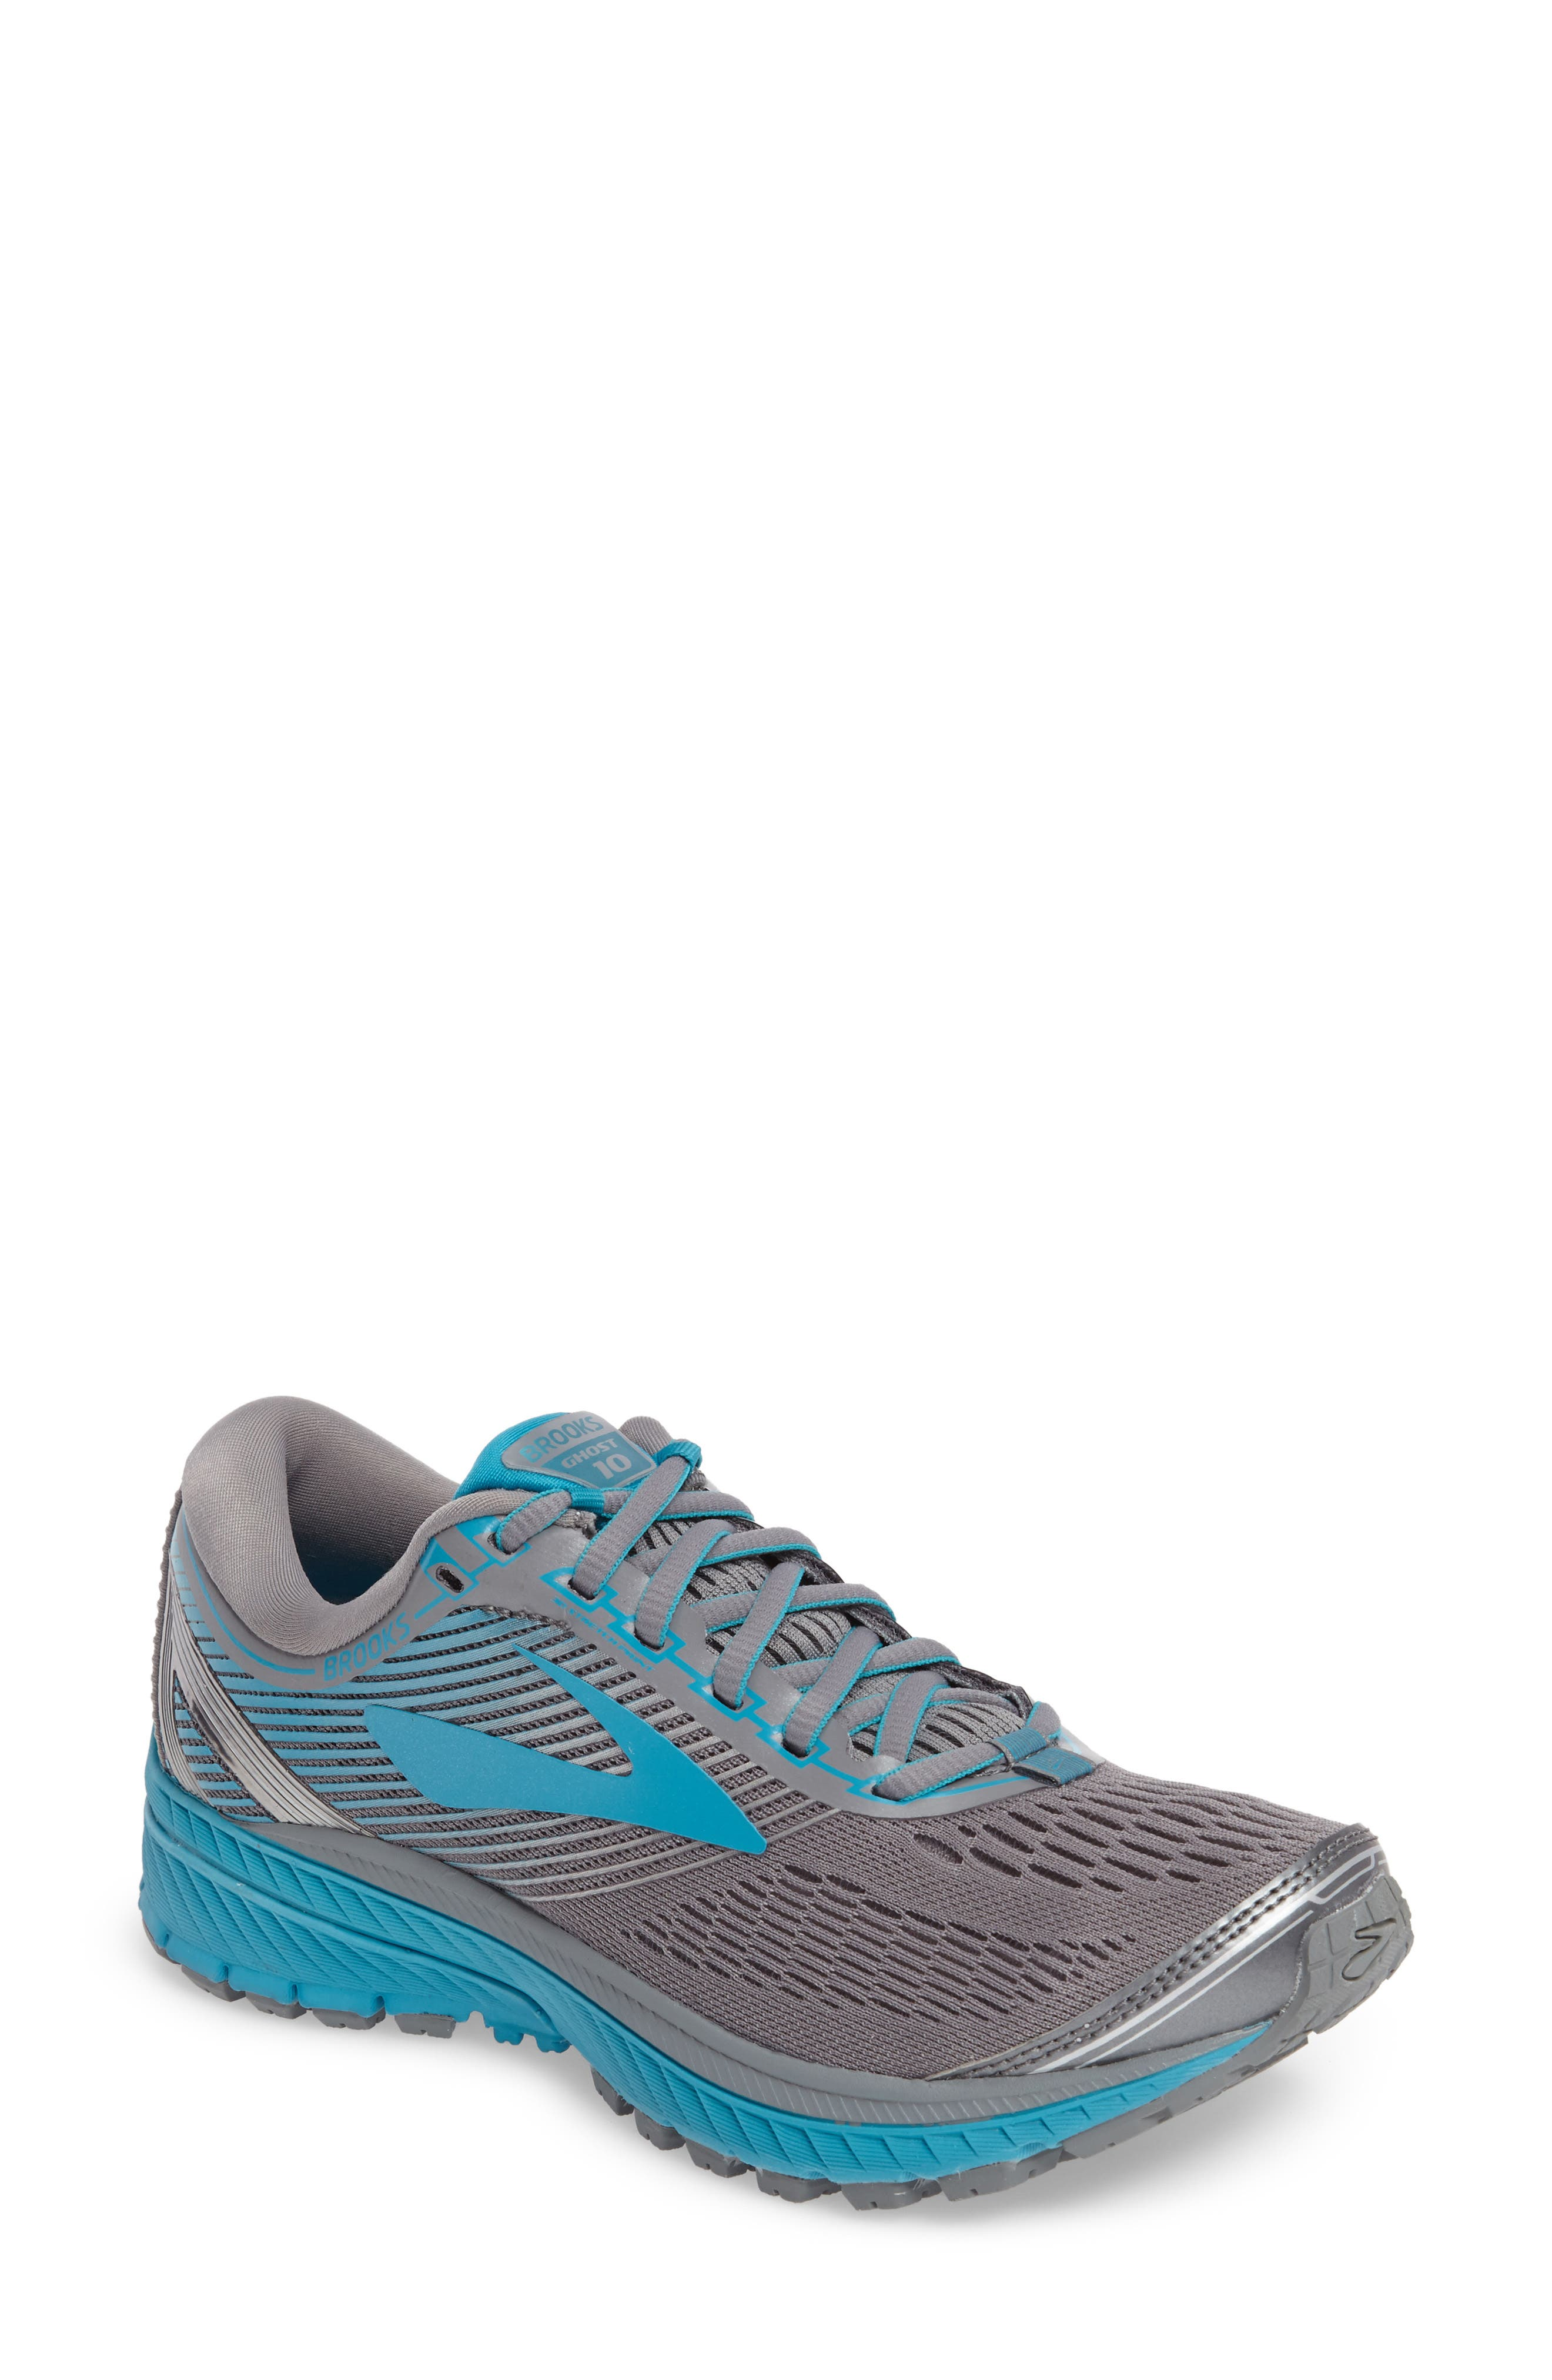 Ghost 10 Running Shoe,                             Main thumbnail 7, color,